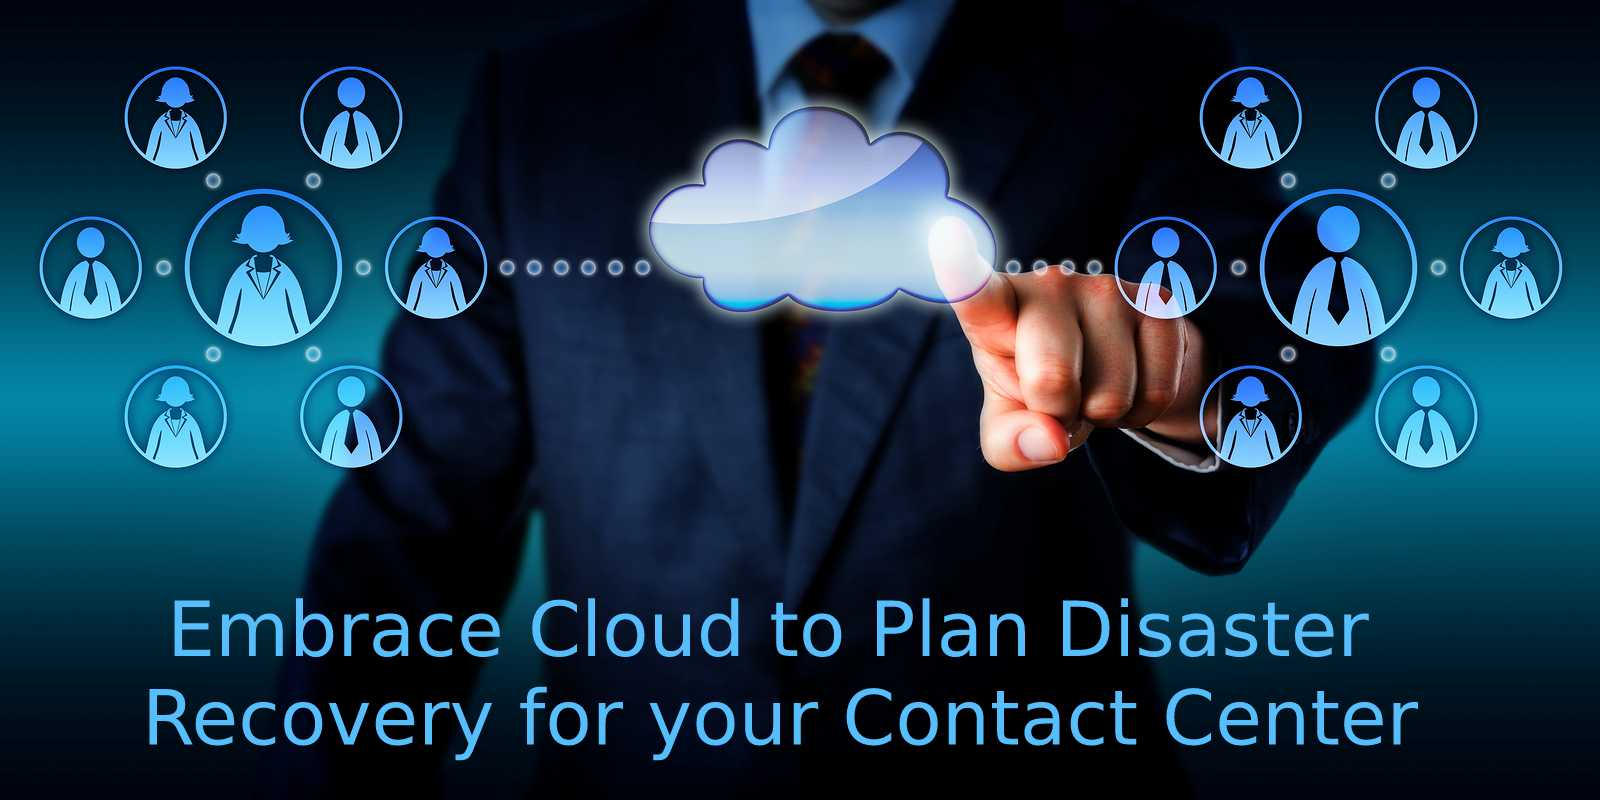 Embrace Cloud to plan Disaster Recovery for your Contact Center